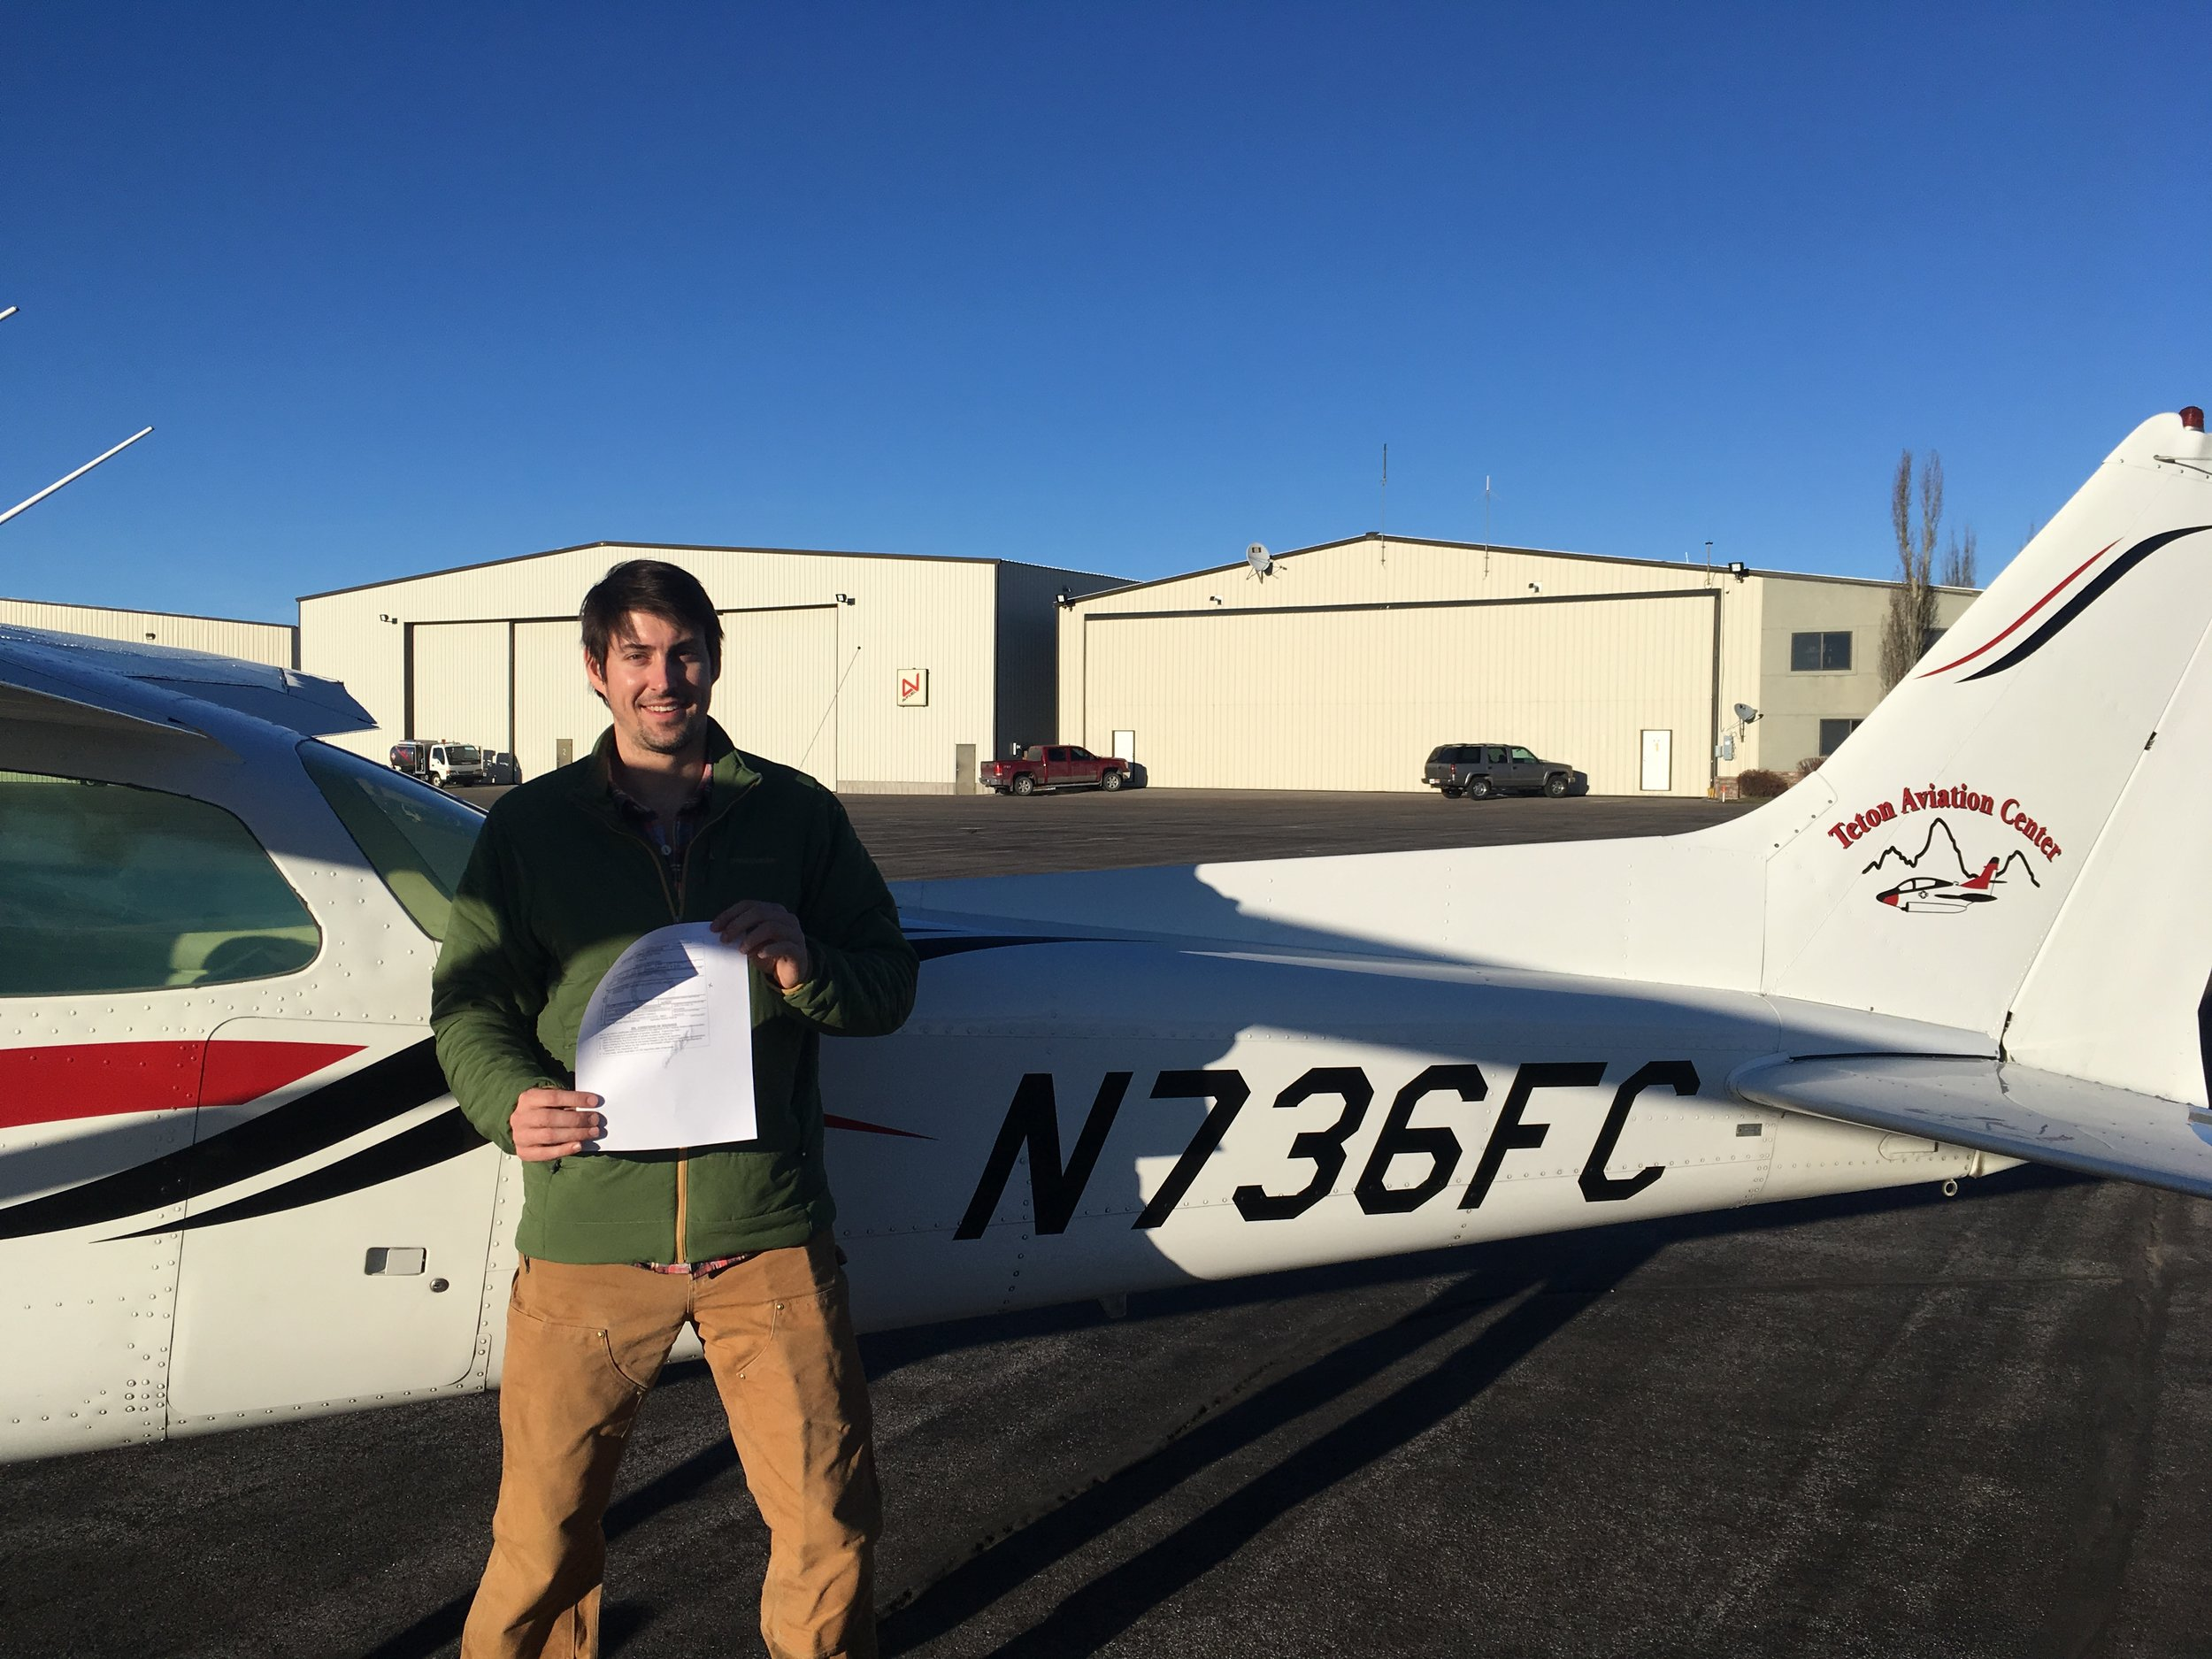 Private Pilot - Congrats! Matt Angle passed his Private Pilot Checkride in November 2018 and is now a Private Pilot.